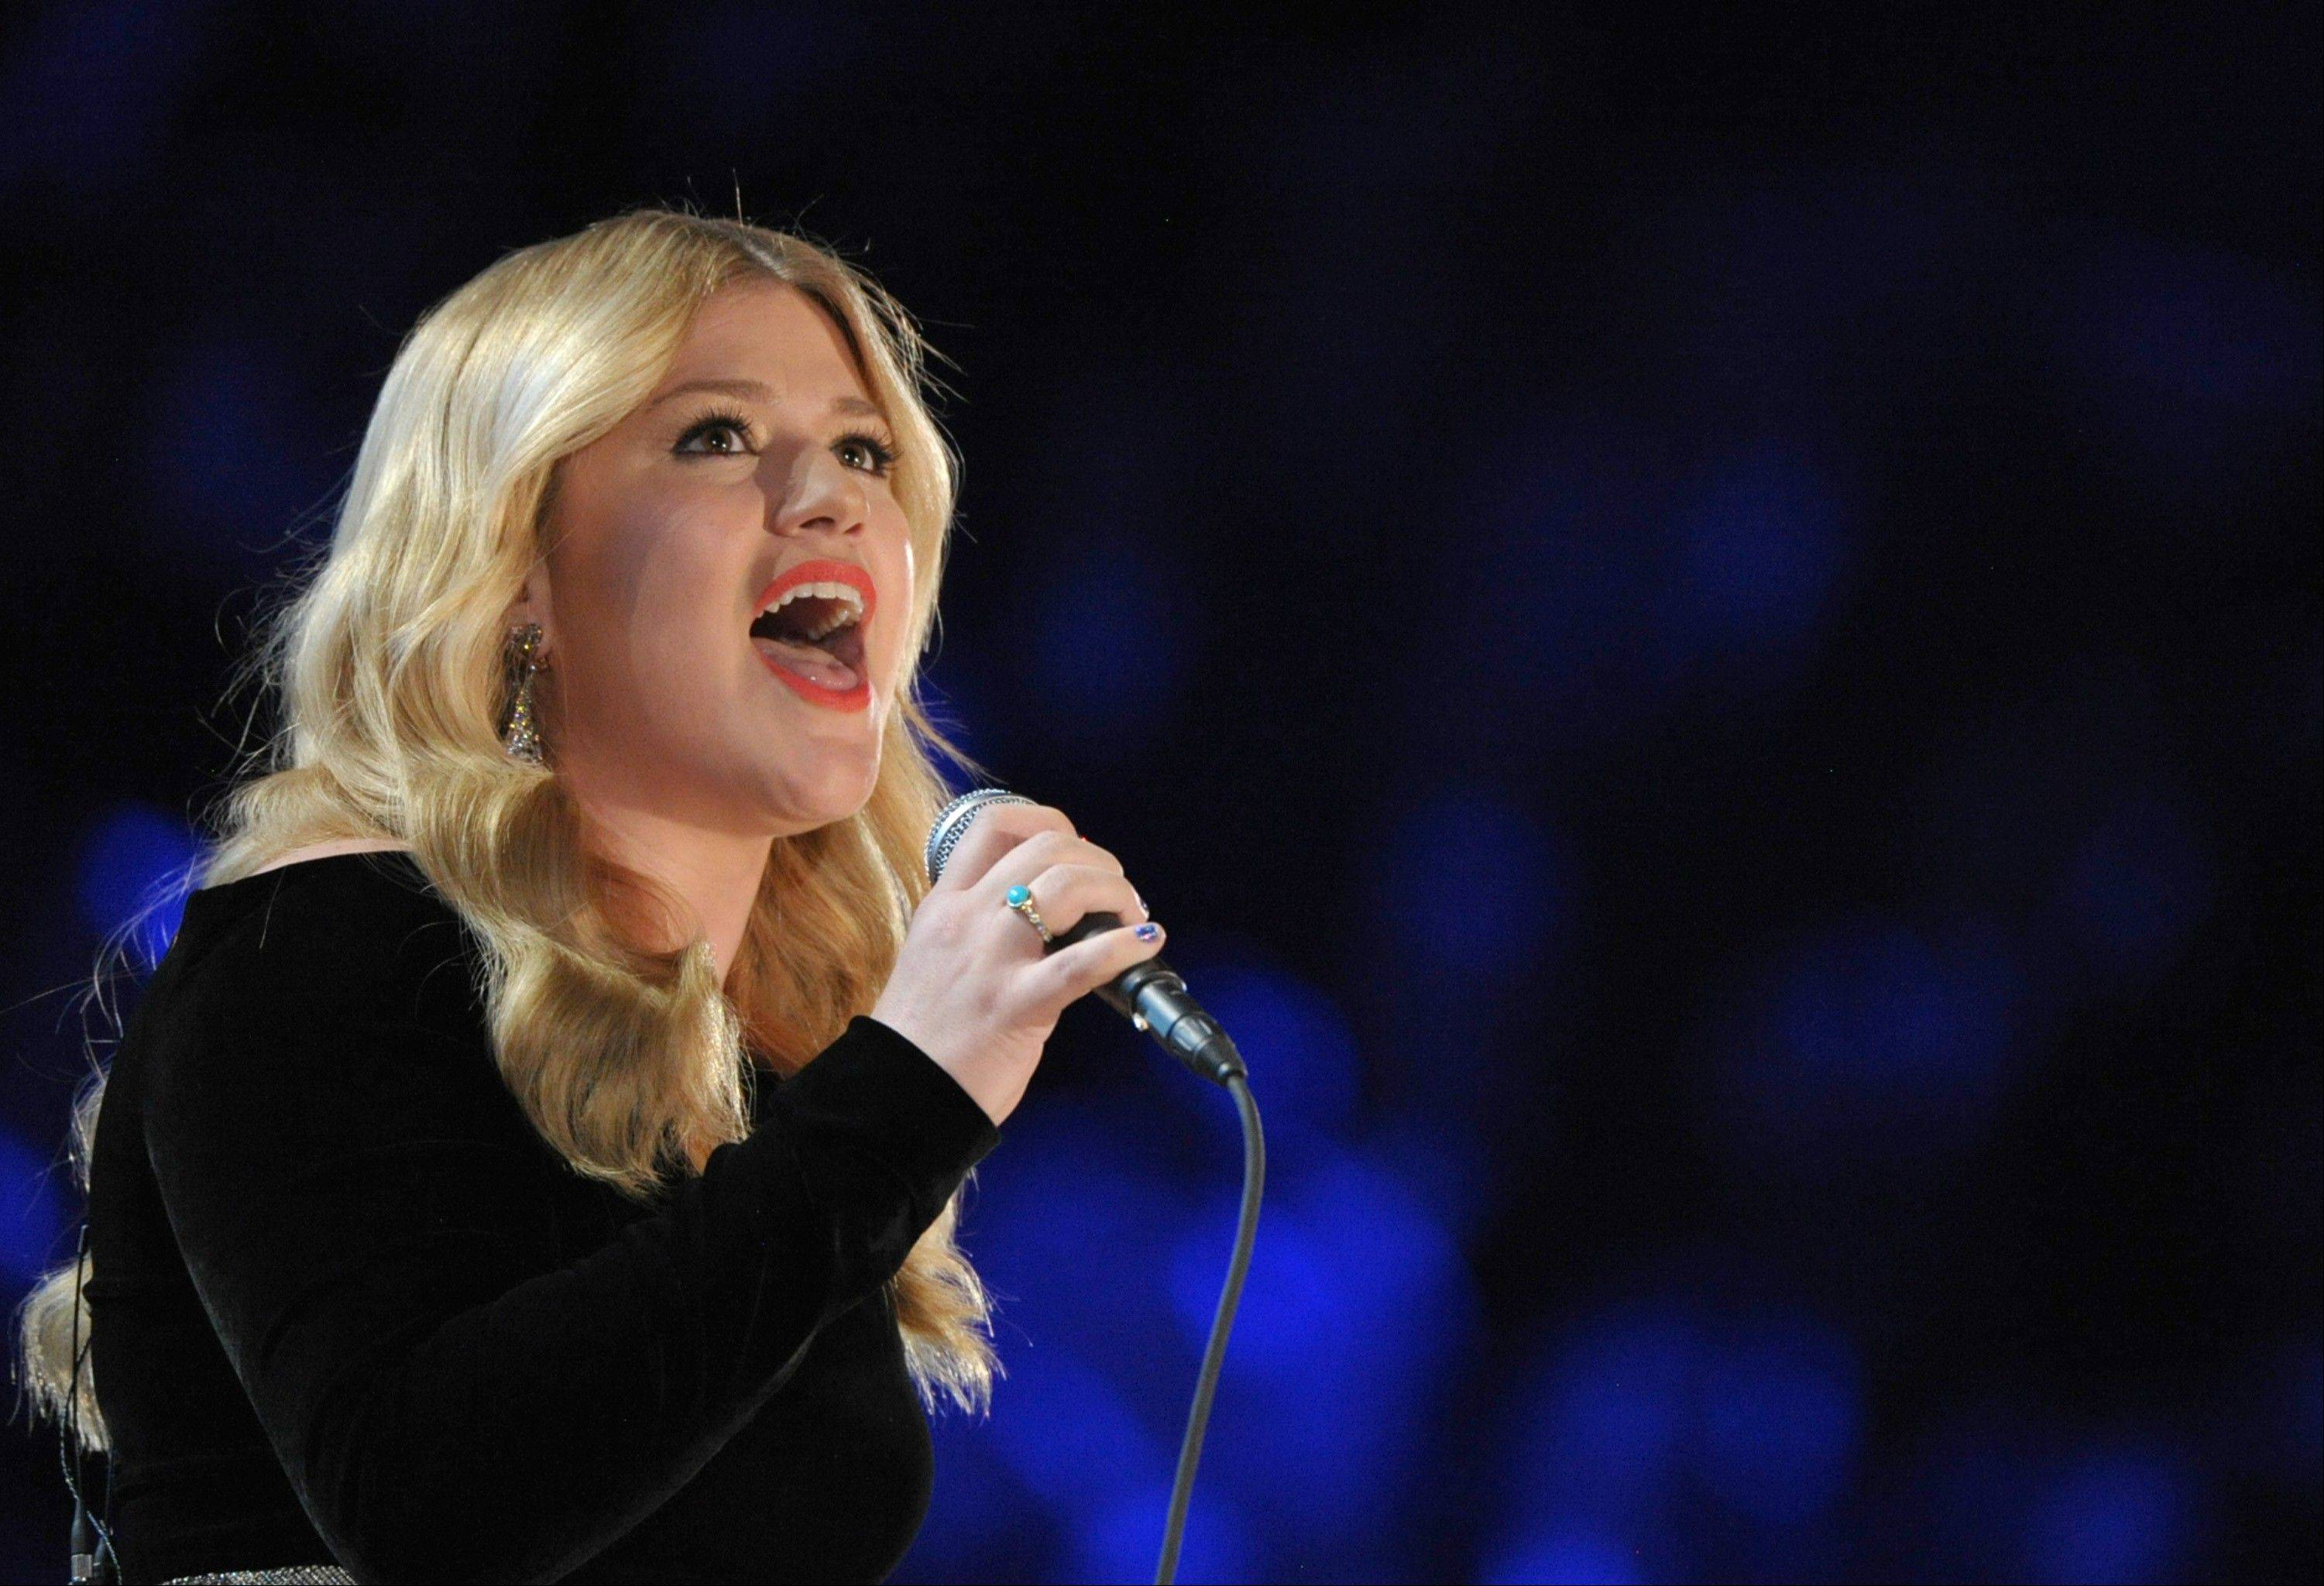 Kelly Clarkson performs on stage at the 55th annual Grammy Awards on Sunday, Feb. 10, 2013, in Los Angeles.